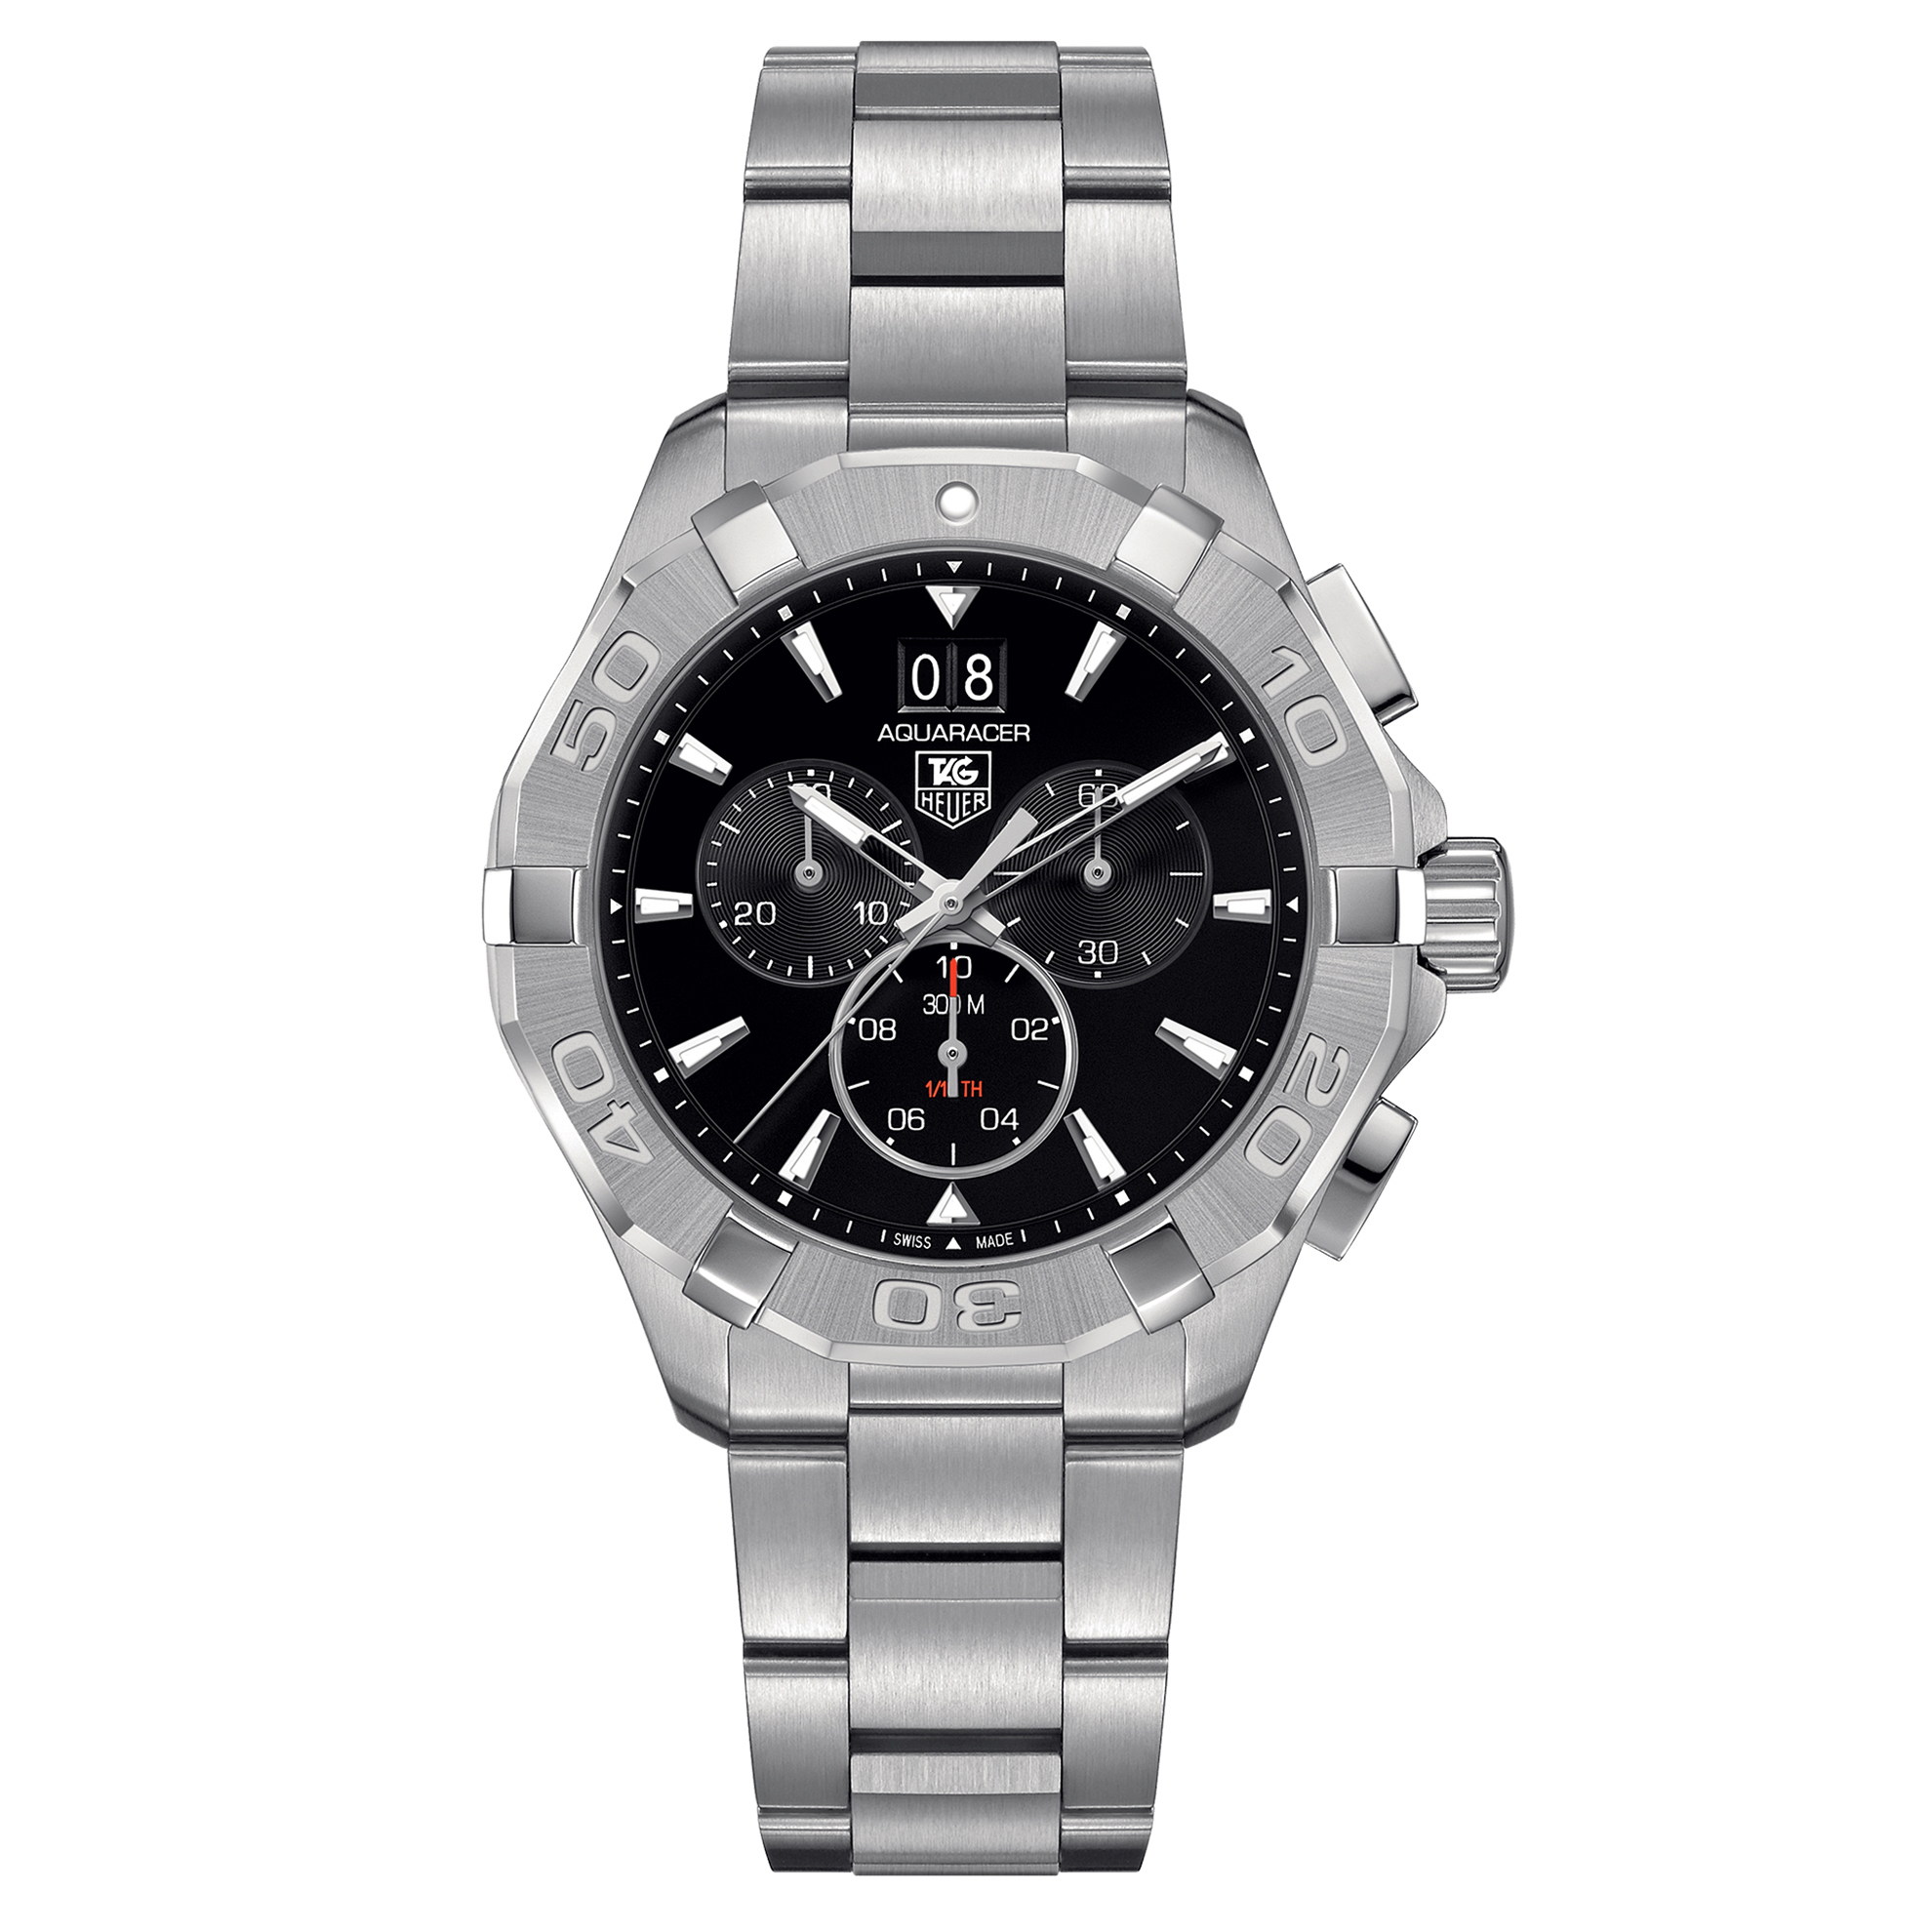 CAY1110.BA0927 Tag Heuer Aquaracer Chronopgraph Stainless Steel Black Dial